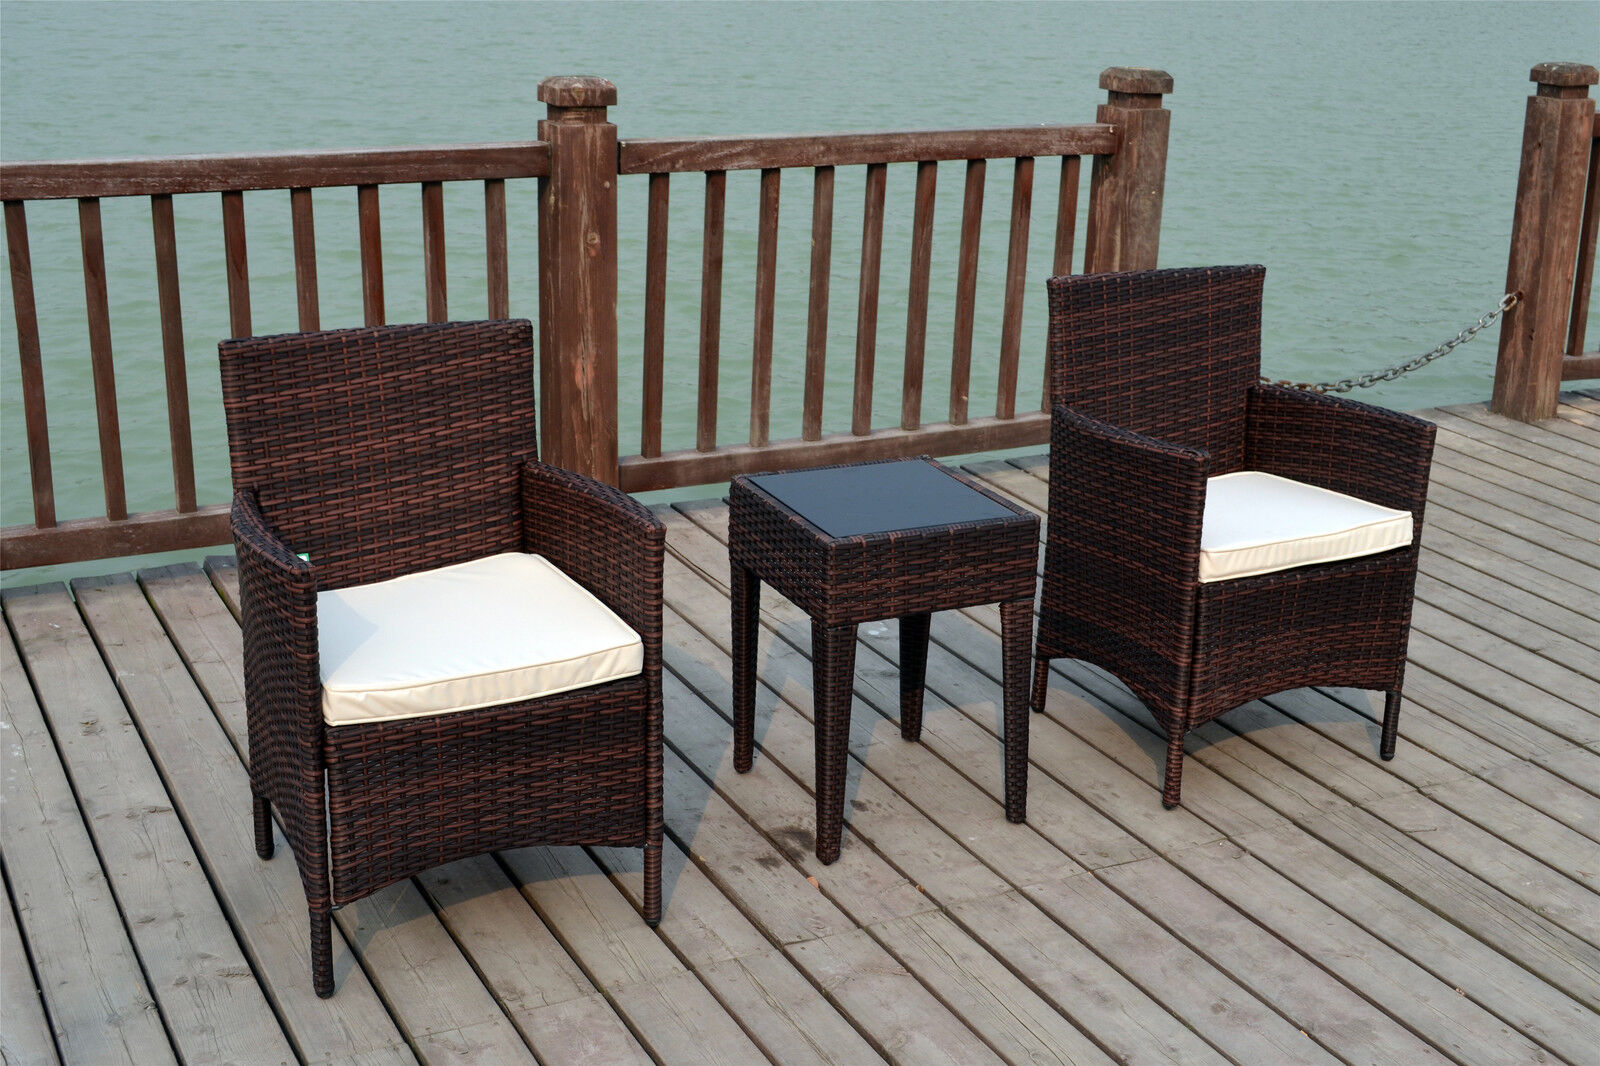 2 chair bistro set adirondack chairs resin target seater rattan wicker conservatory outdoor